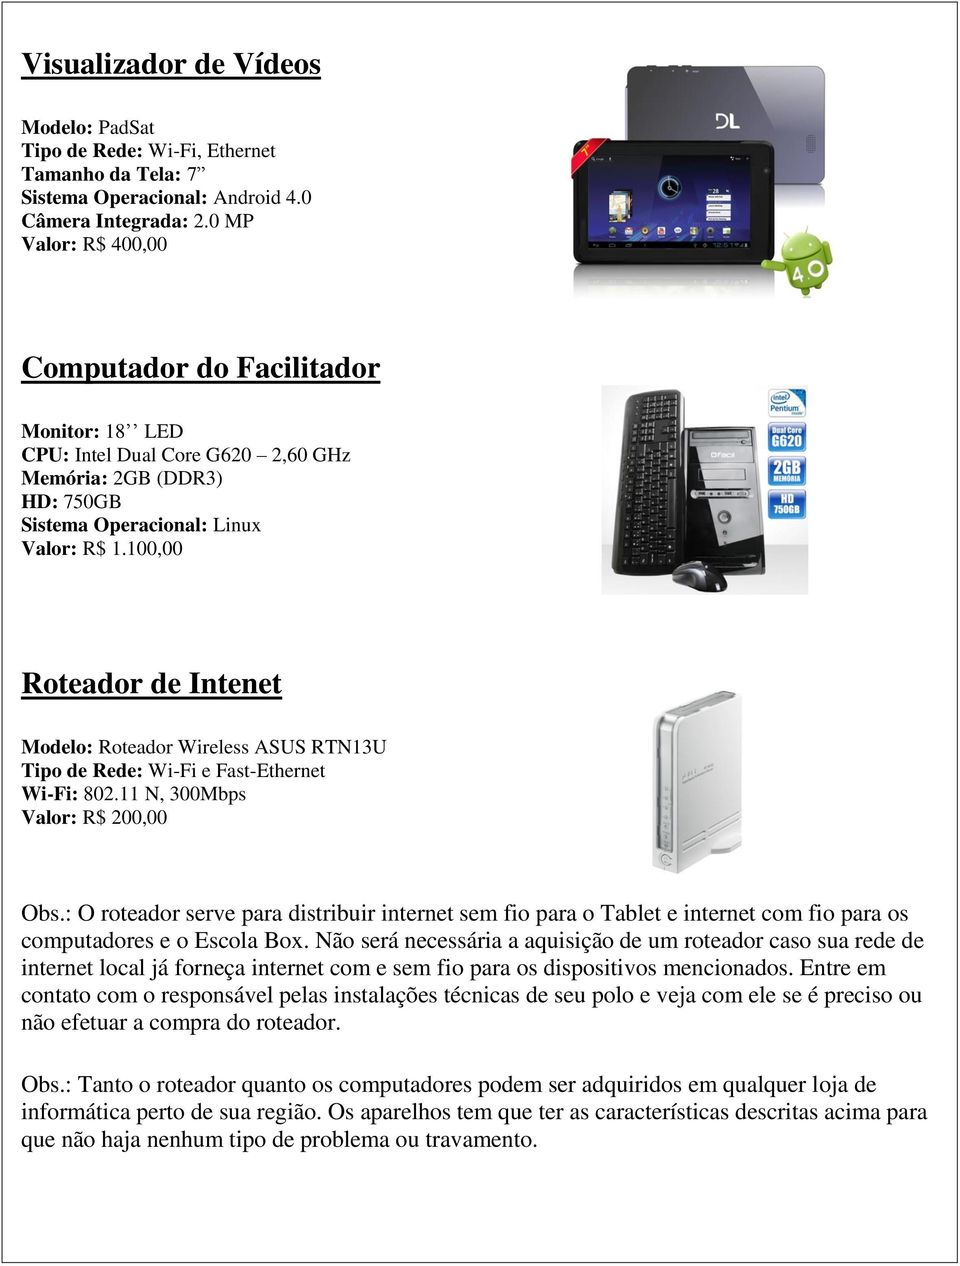 100,00 Roteador de Intenet Modelo: Roteador Wireless ASUS RTN13U Tipo de Rede: Wi-Fi e Fast-Ethernet Wi-Fi: 802.11 N, 300Mbps Valor: R$ 200,00 Obs.